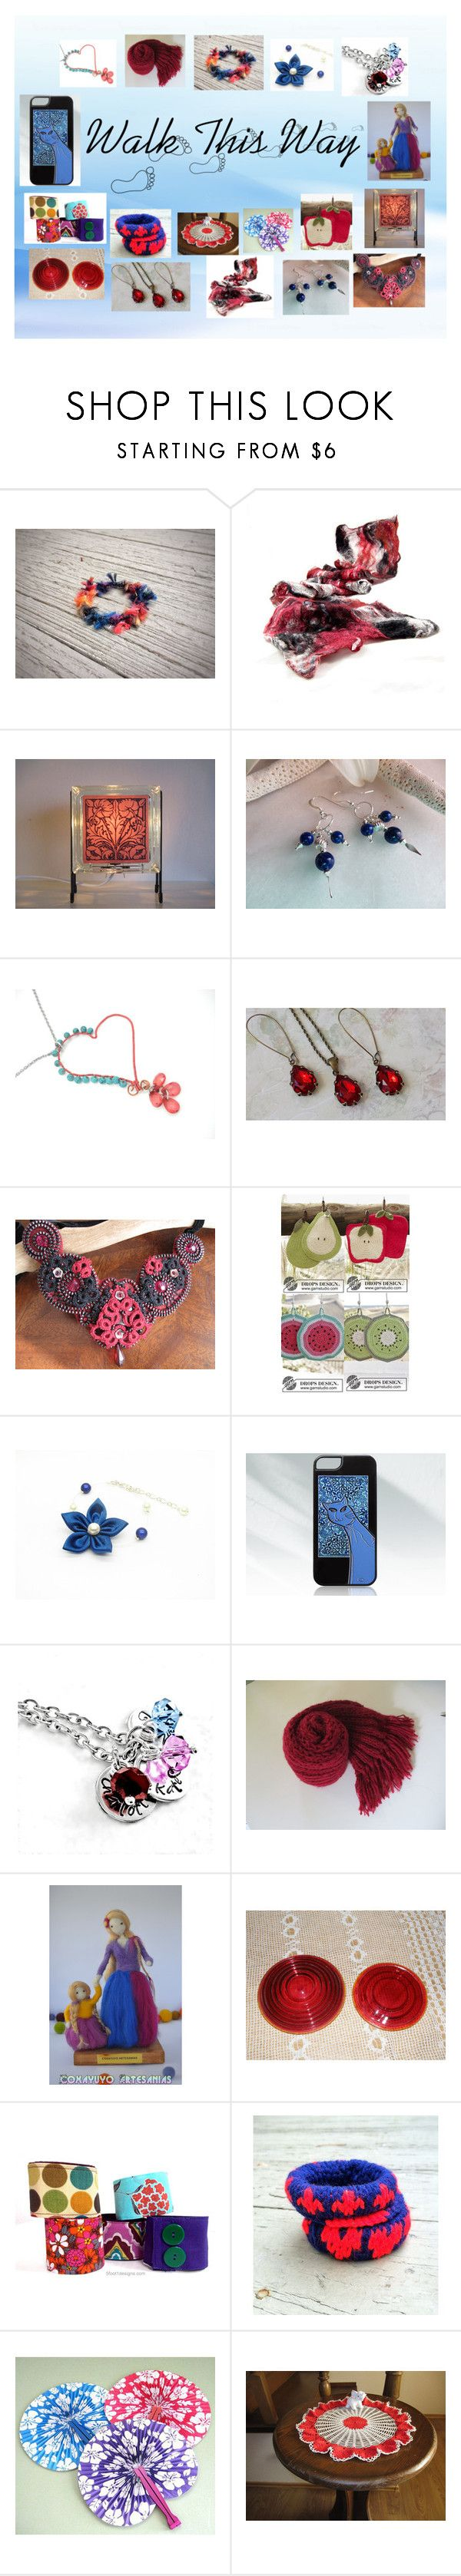 """""""Walk This Way: Vintage & Handmade for Her"""" by paulinemcewen ❤ liked on Polyvore featuring Lazuli, Nana' and vintage"""